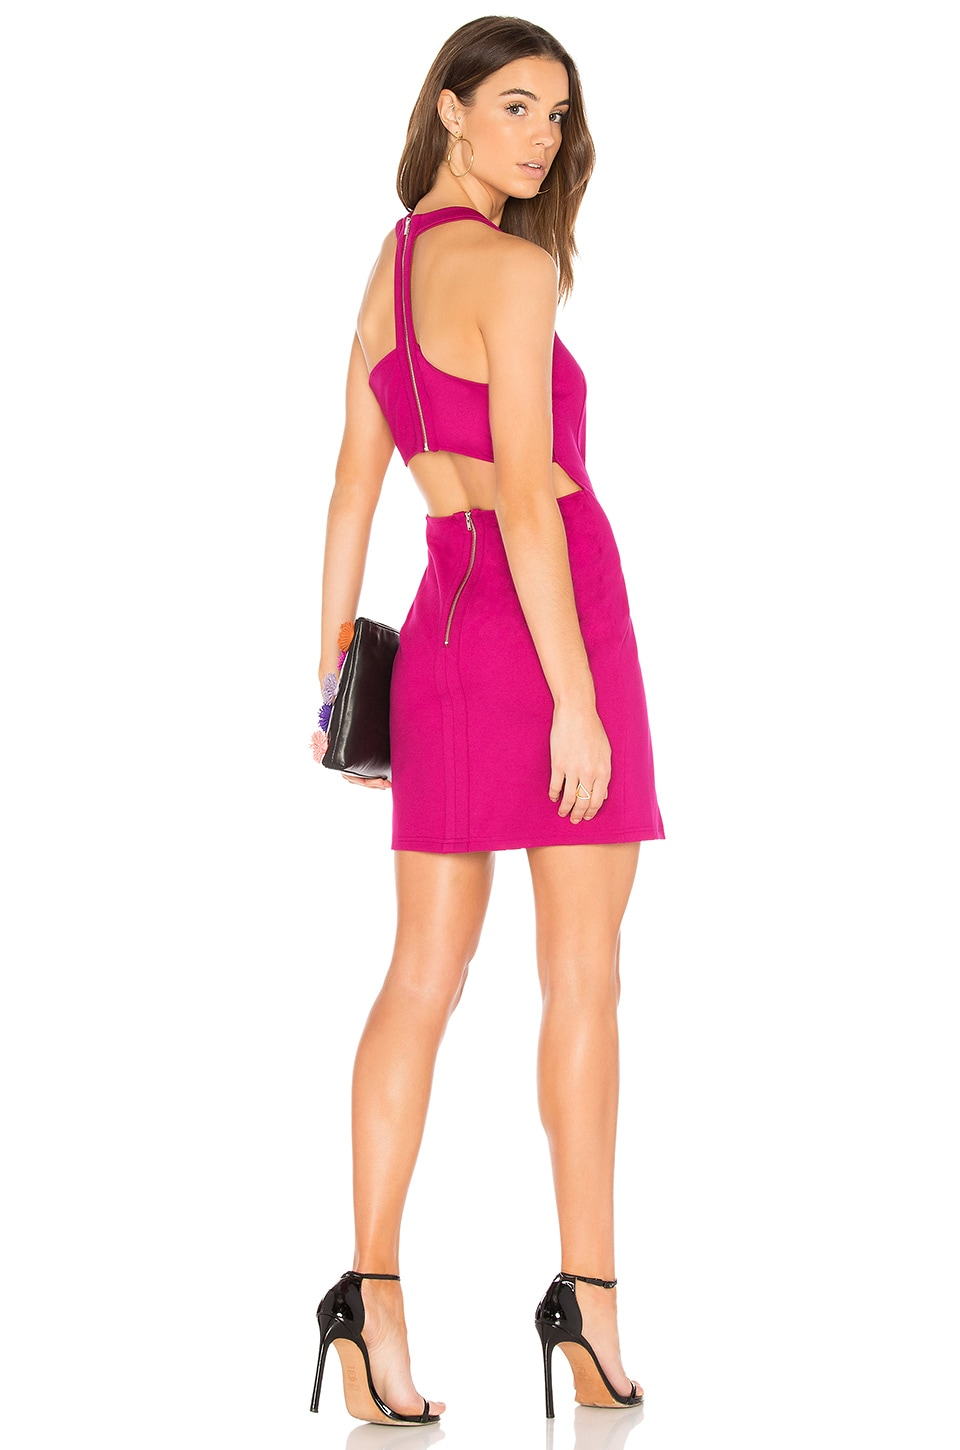 Bobi BLACK Bodycon Dress in Berry